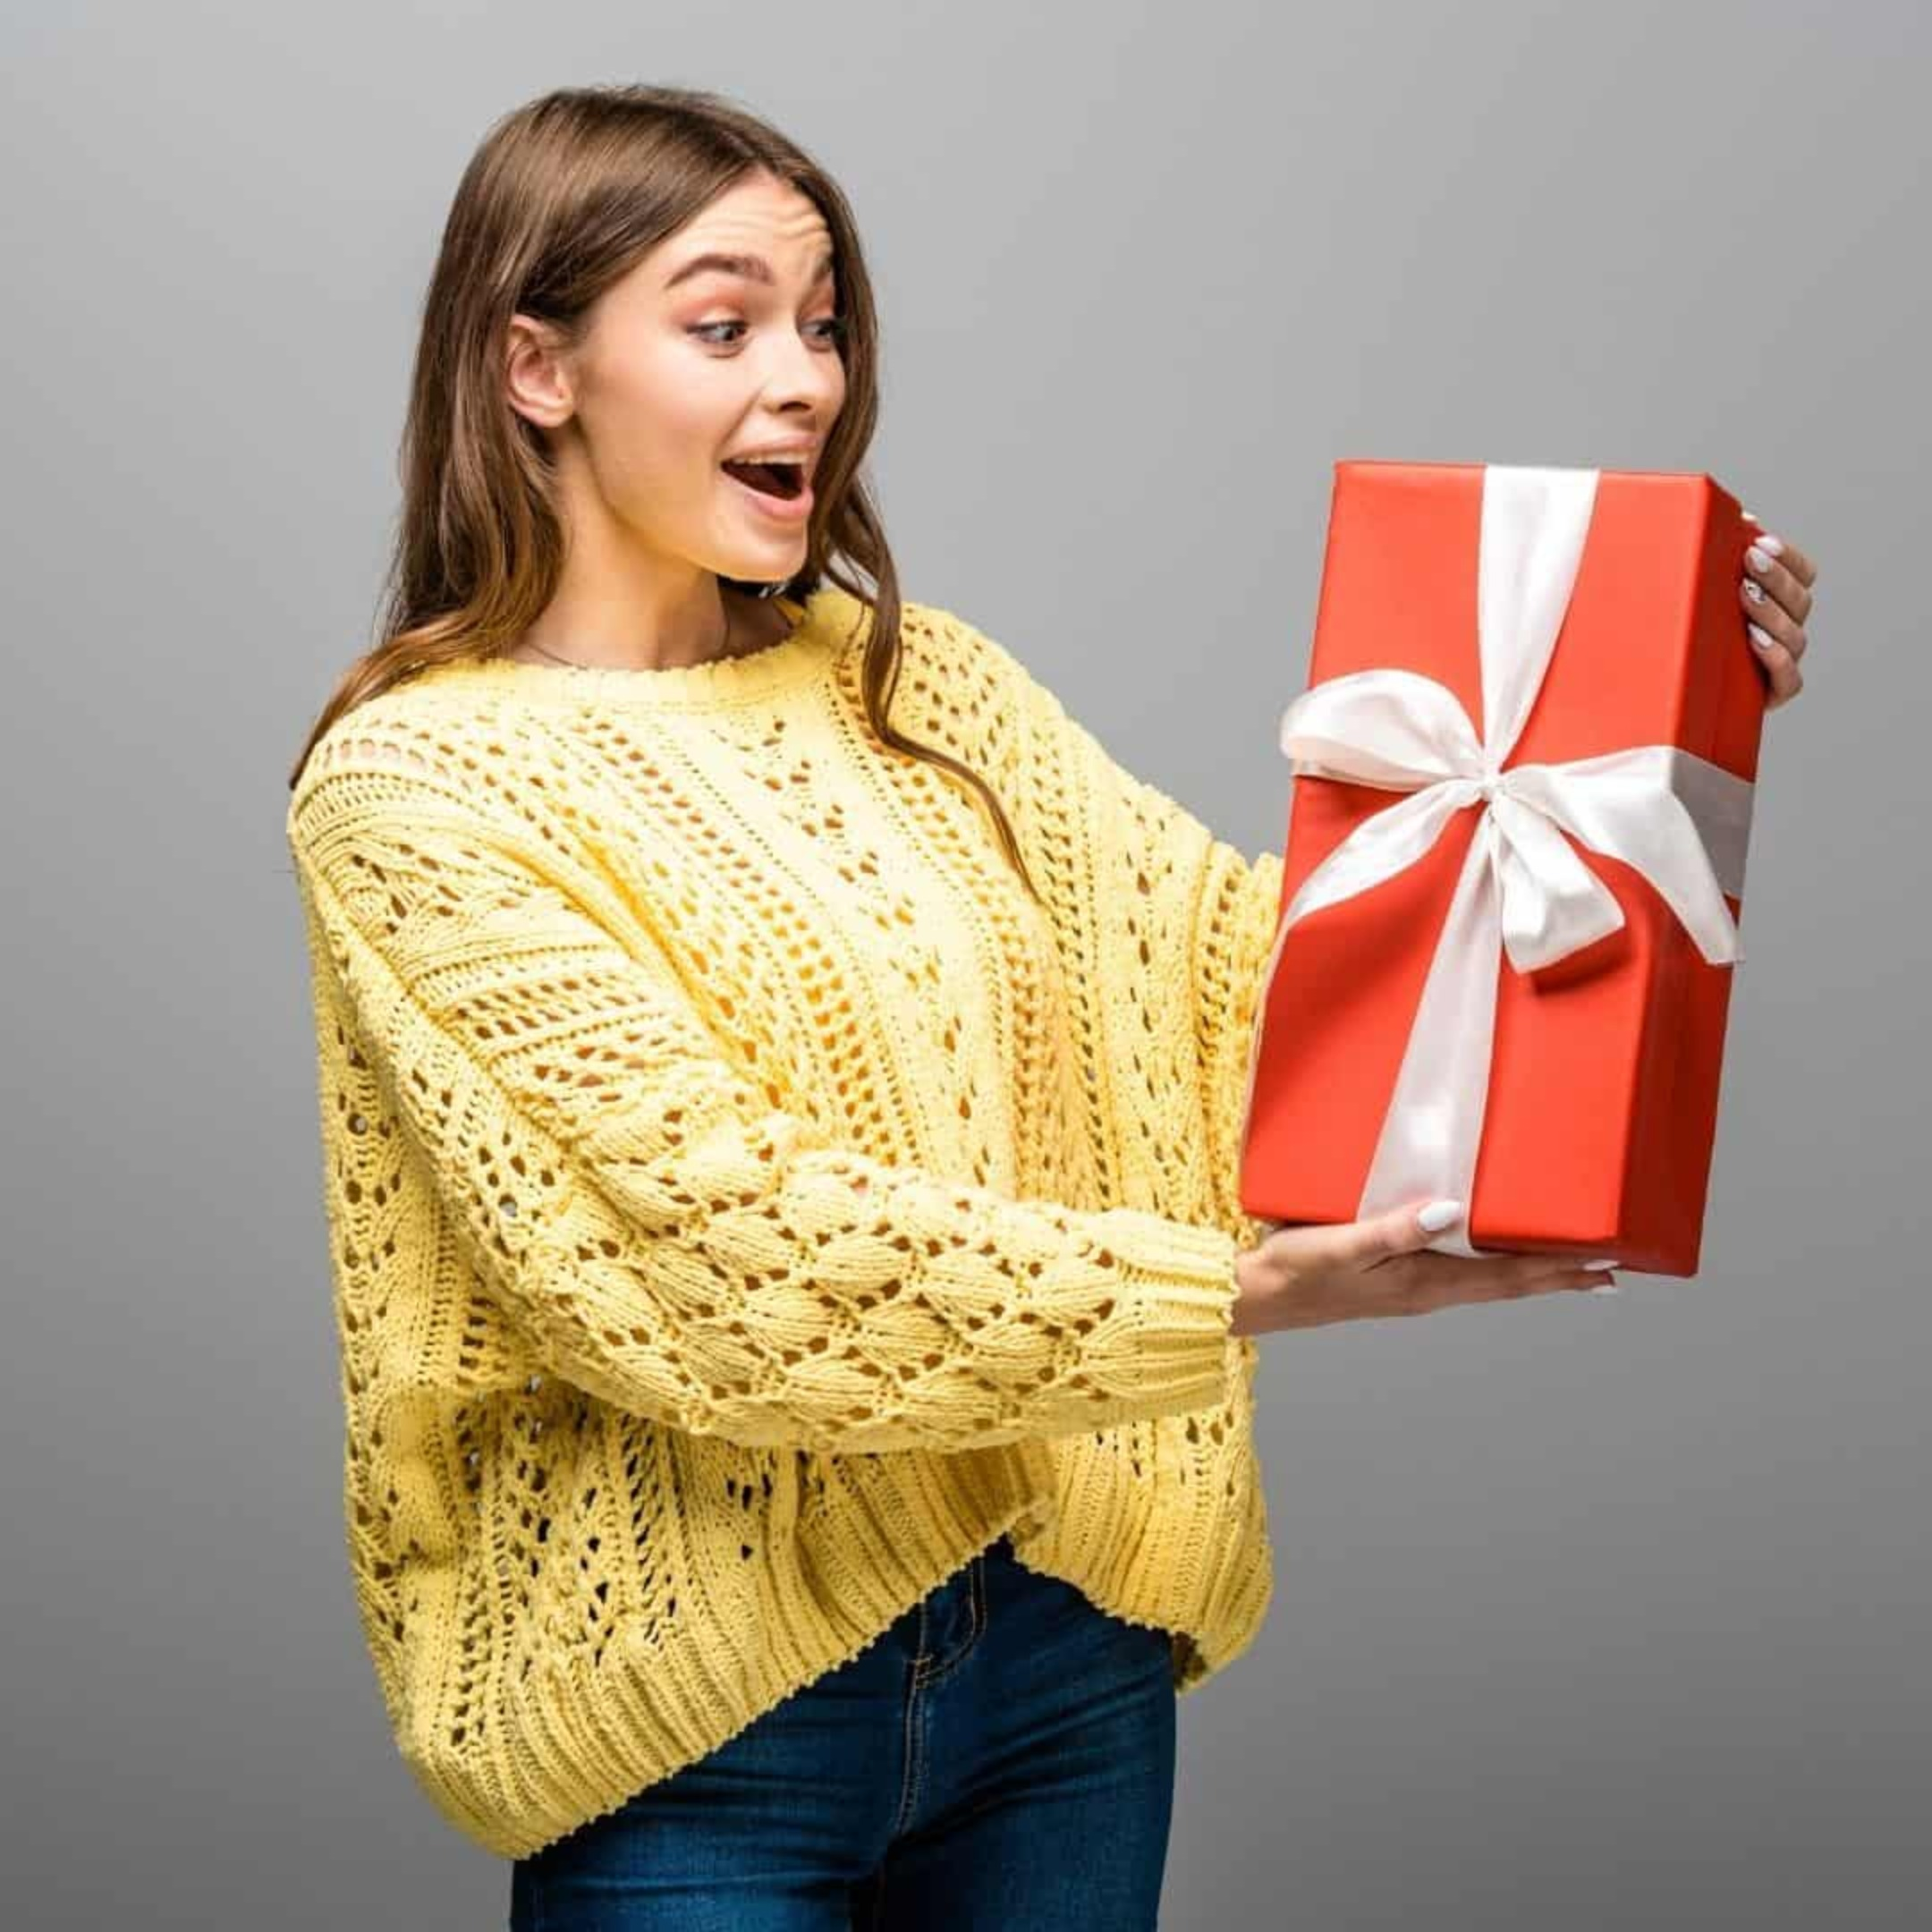 Gifts For Her.....